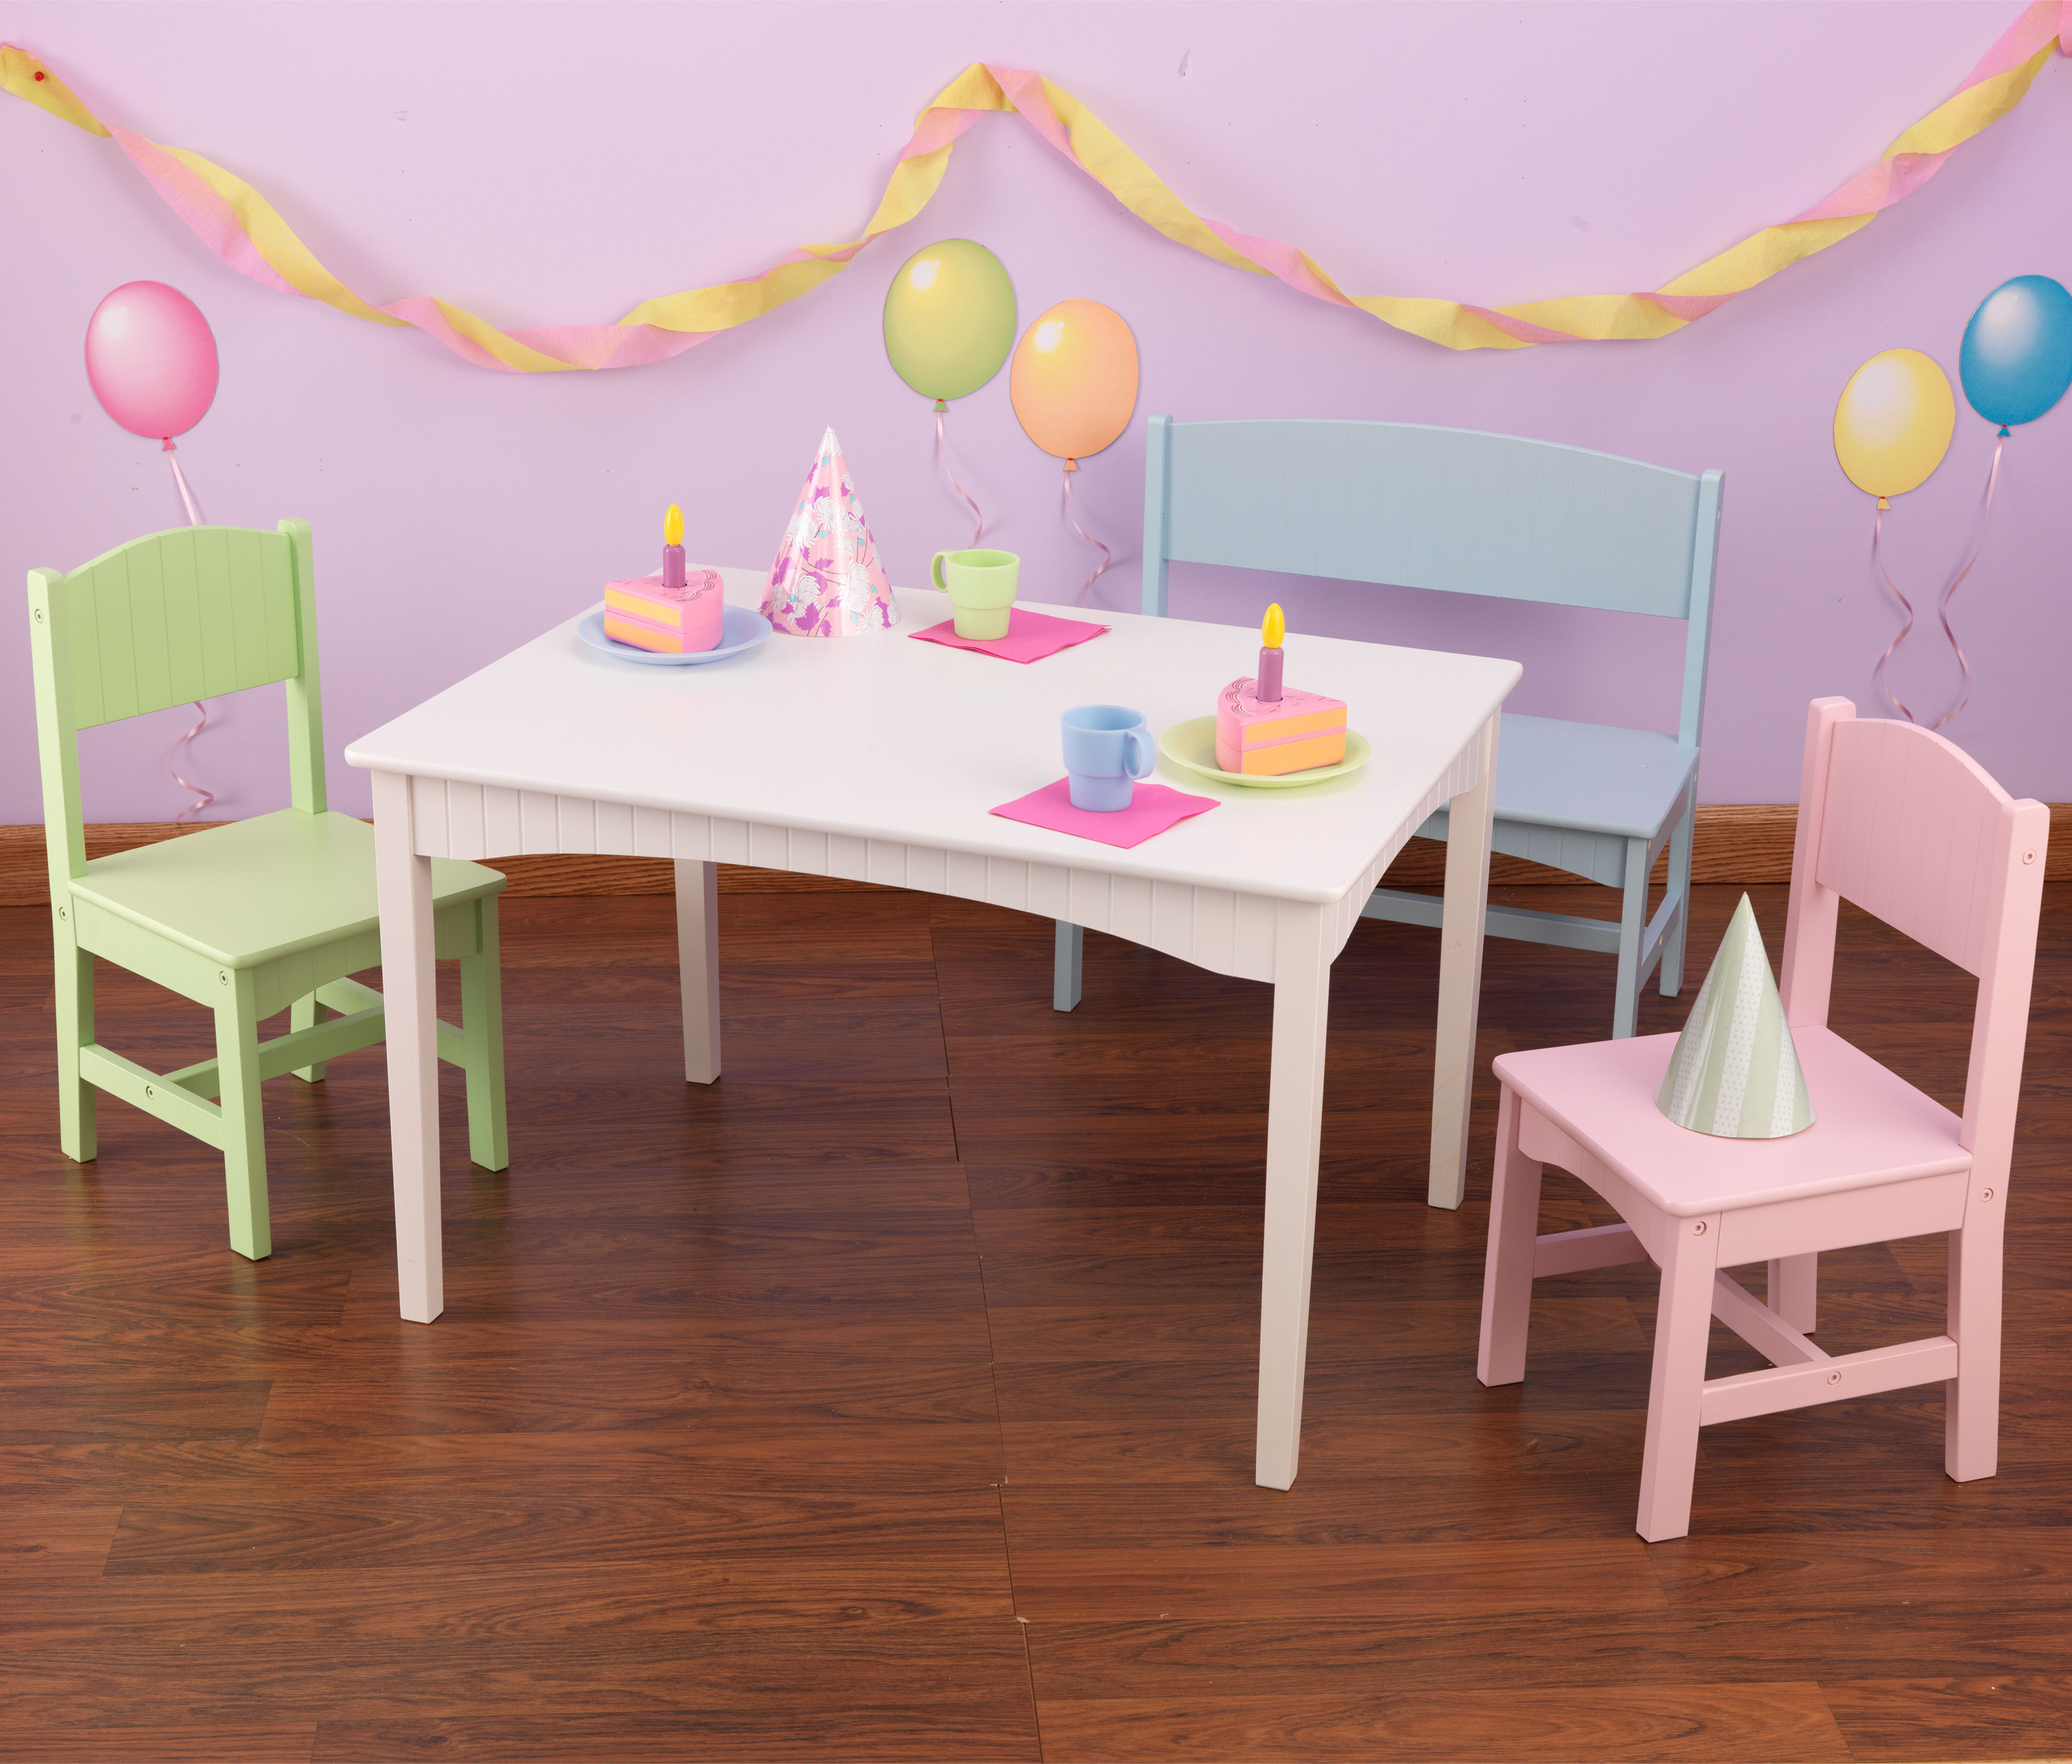 Kidkraft Nantucket Kids Table With Bench And 2 Chairs Set Pastel 26112 Walmart Com